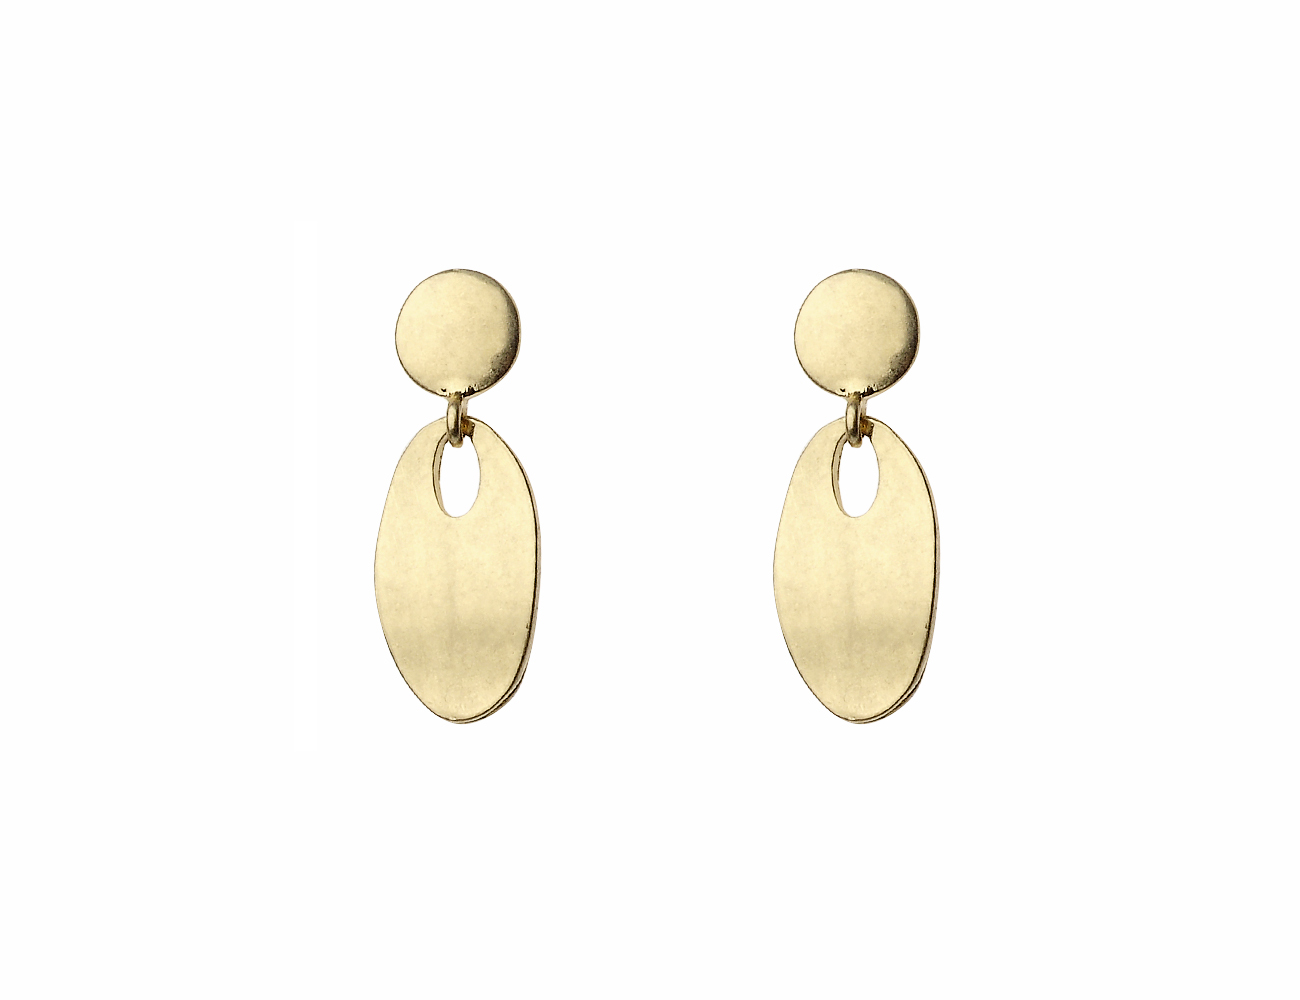 Worn Gold Oval Drop Earring